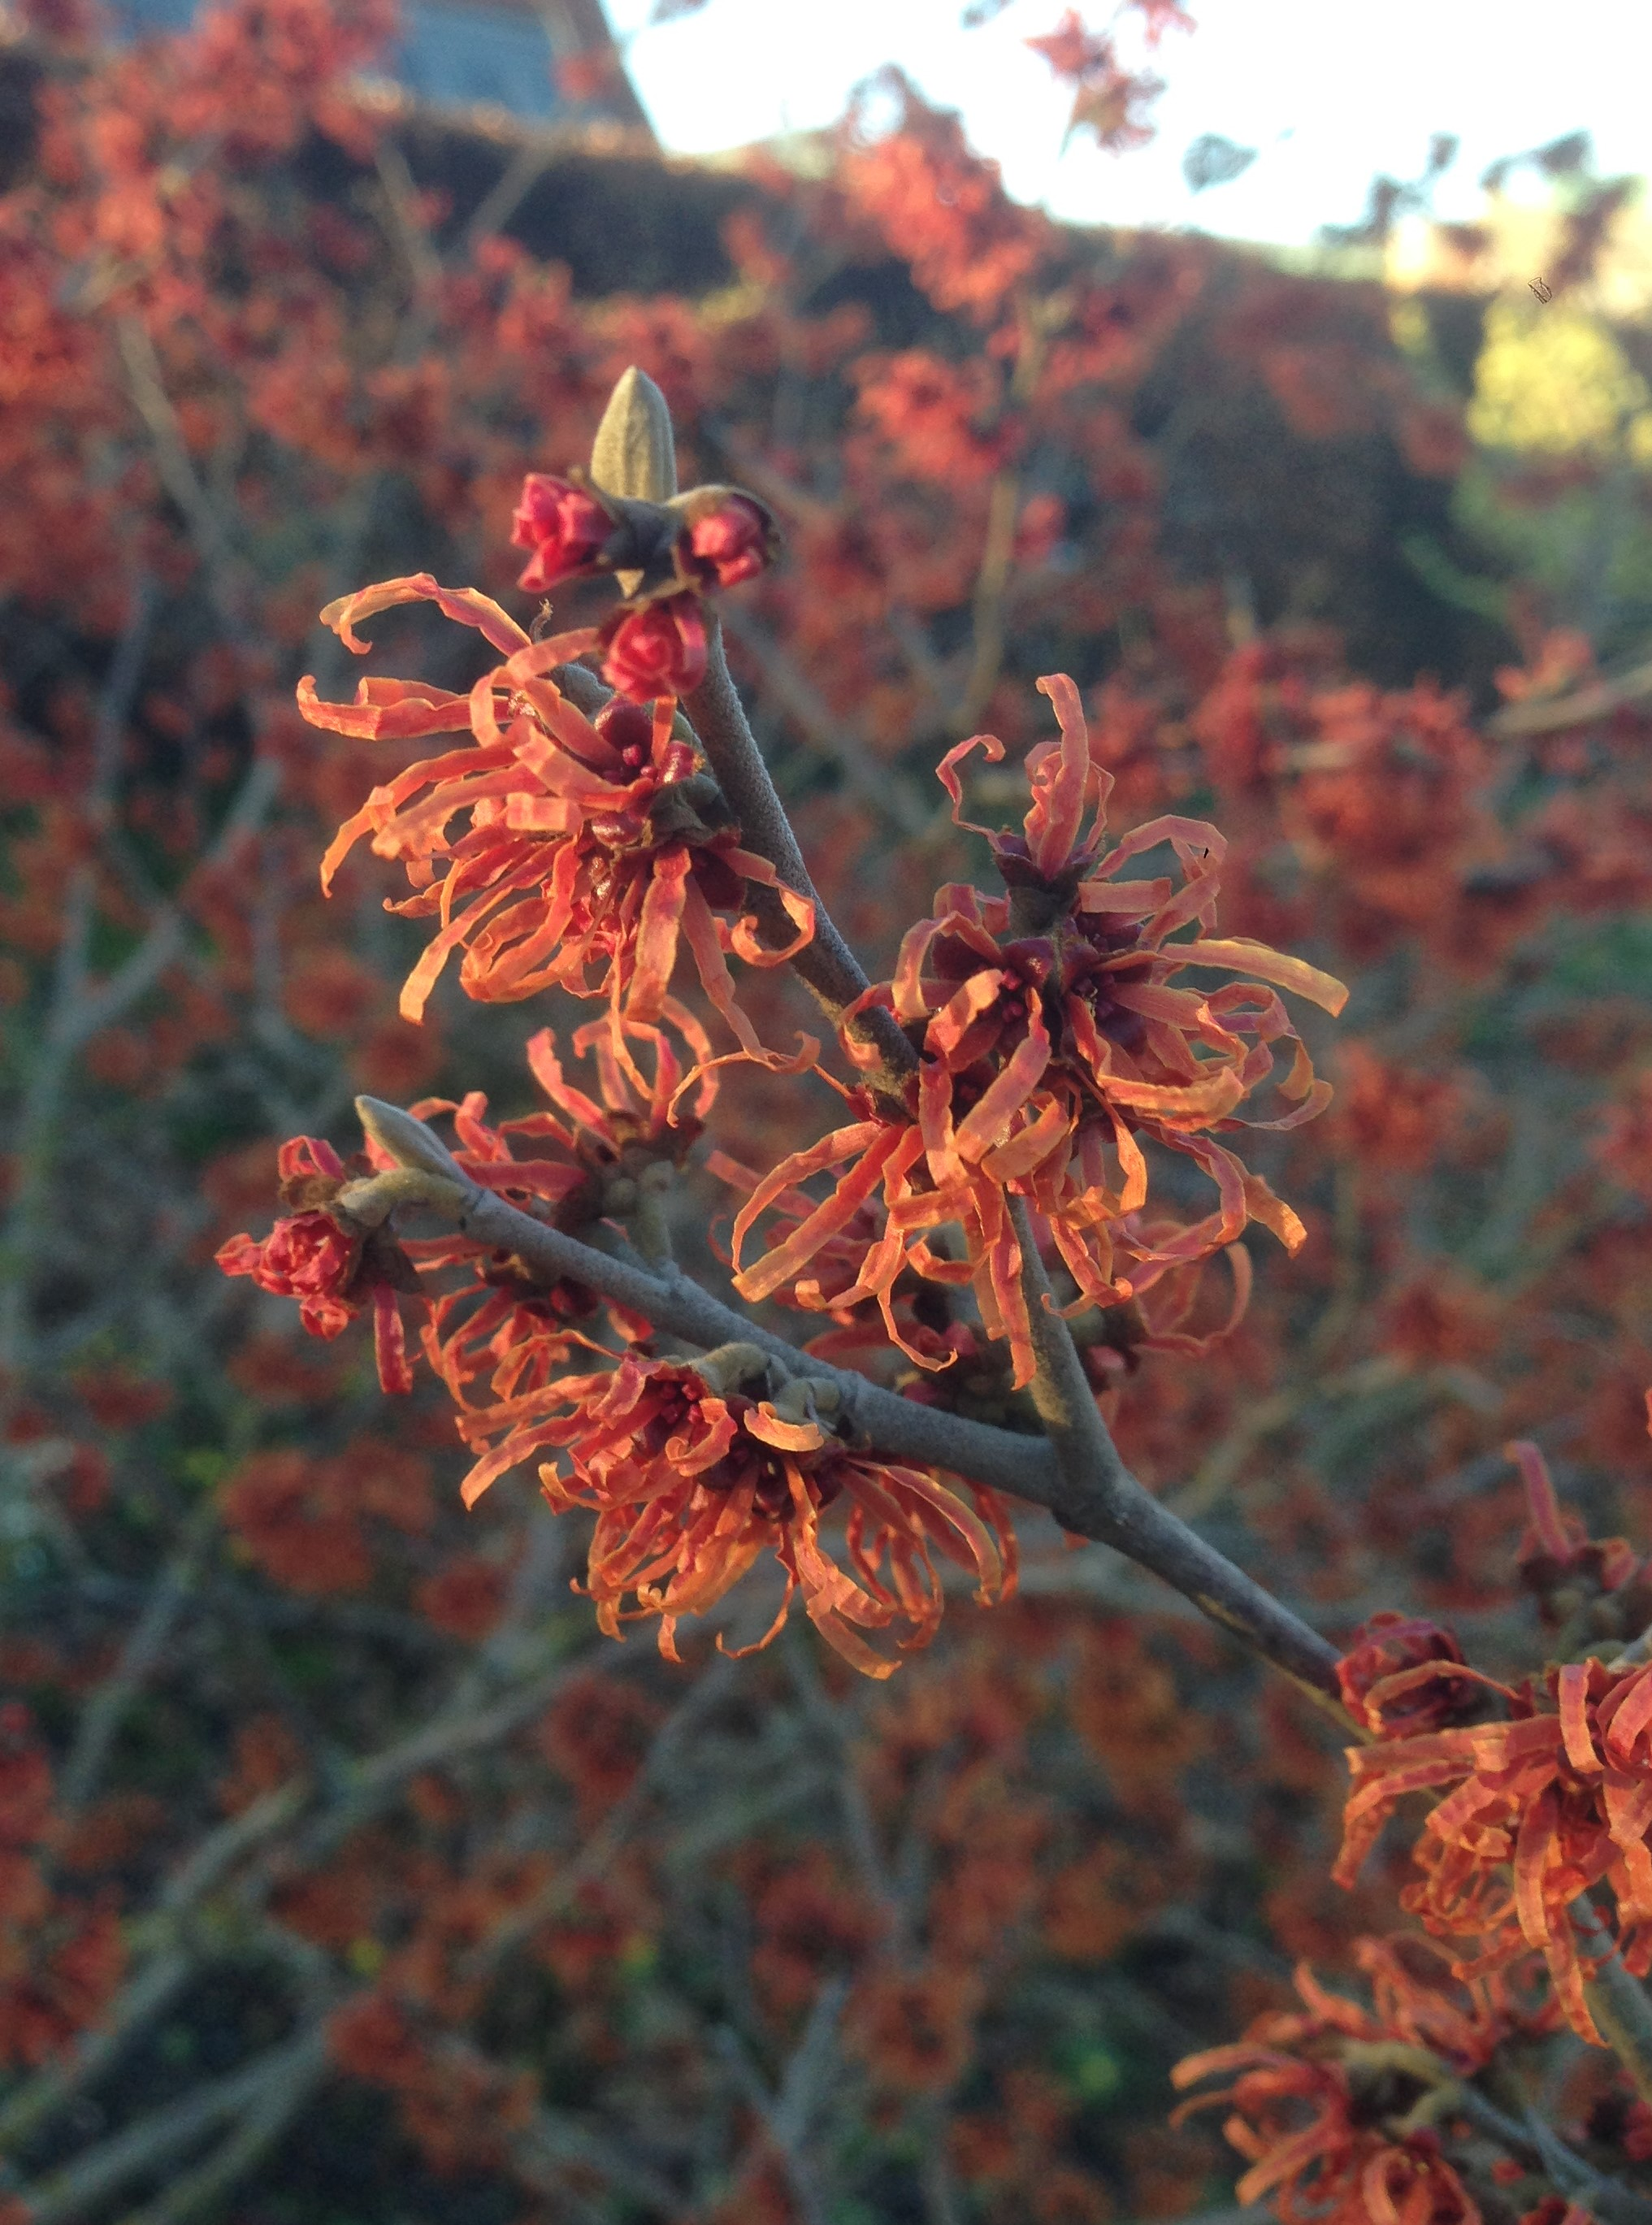 Details of red flowers on a witch hazel branch.